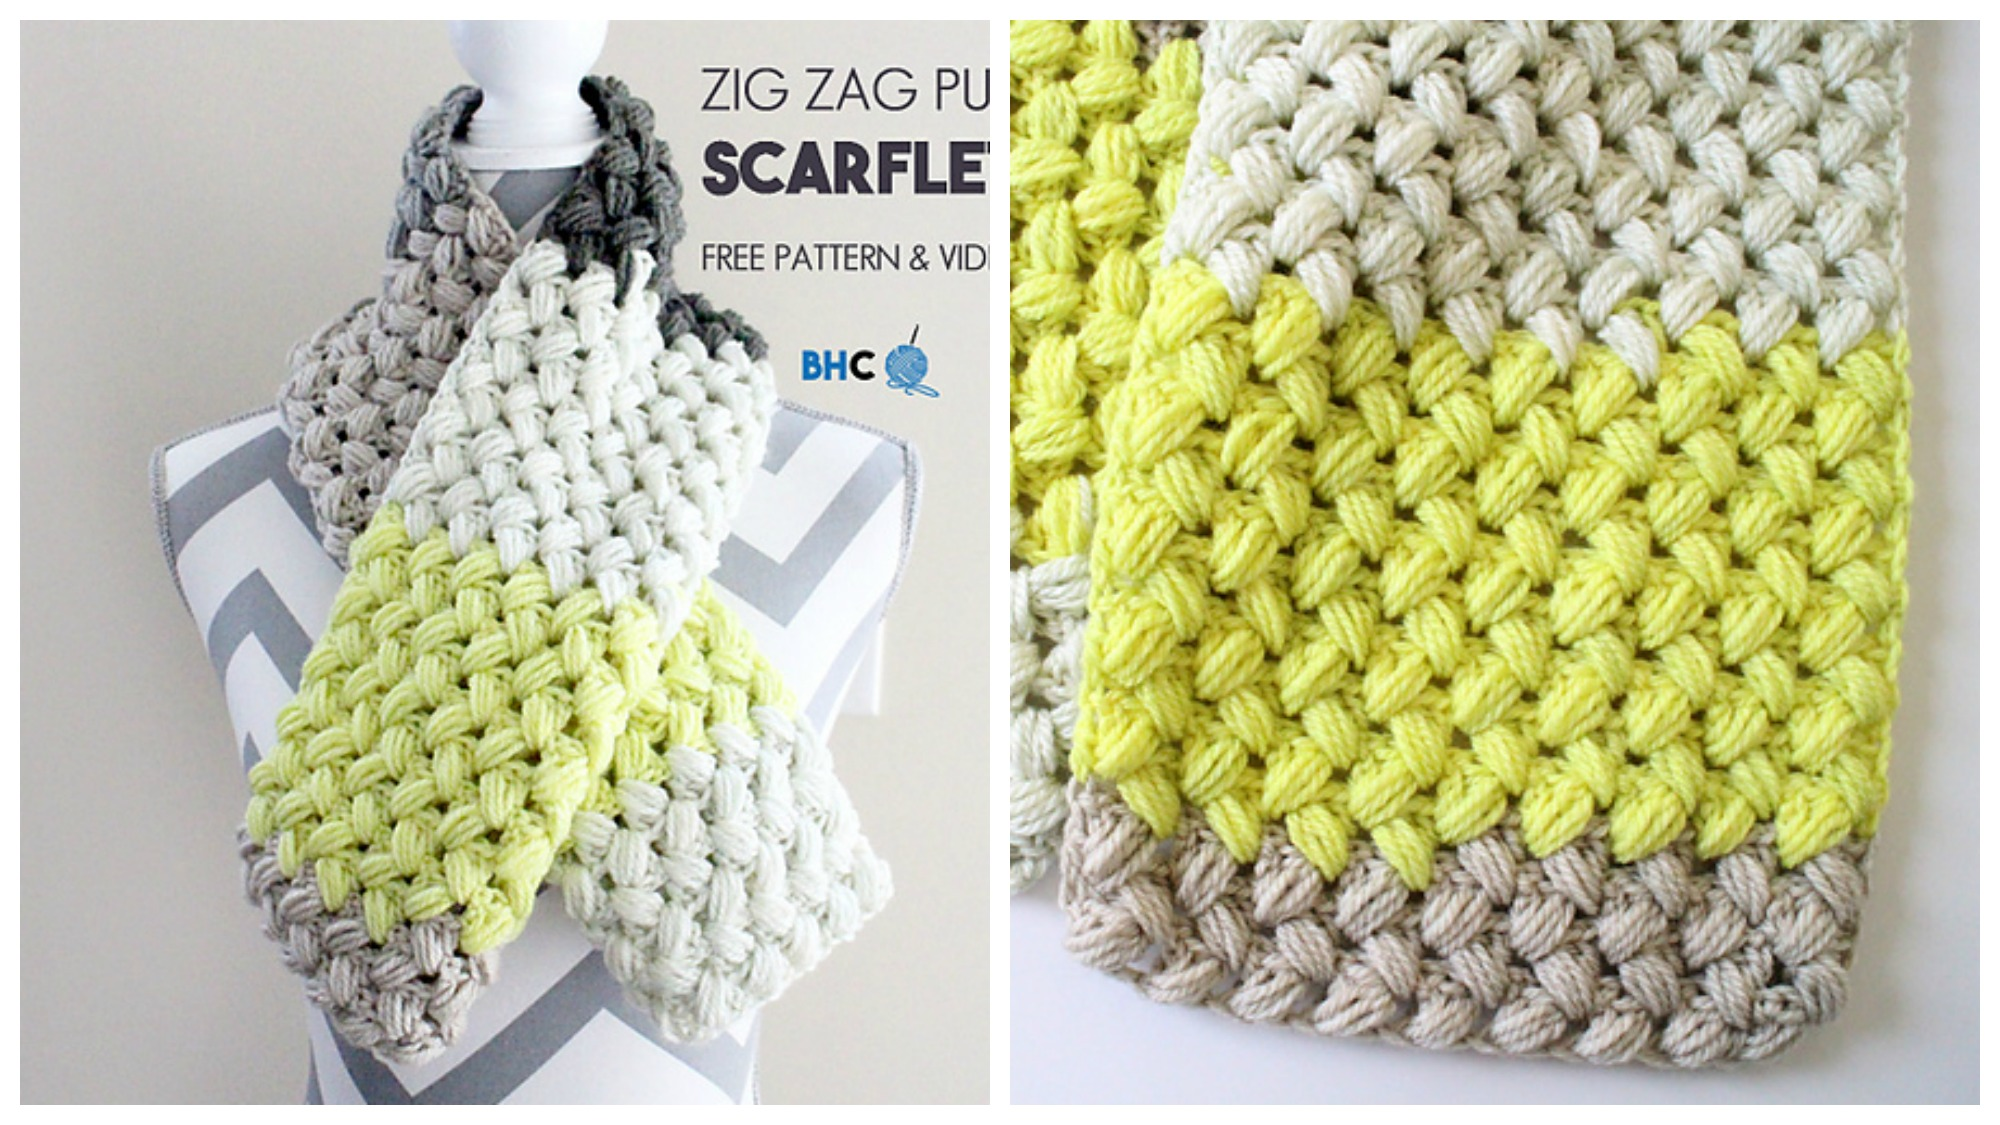 Crocheting Zig Zag Stitch : Crochet Zig Zag Puff Stitch - PRETTY IDEAS